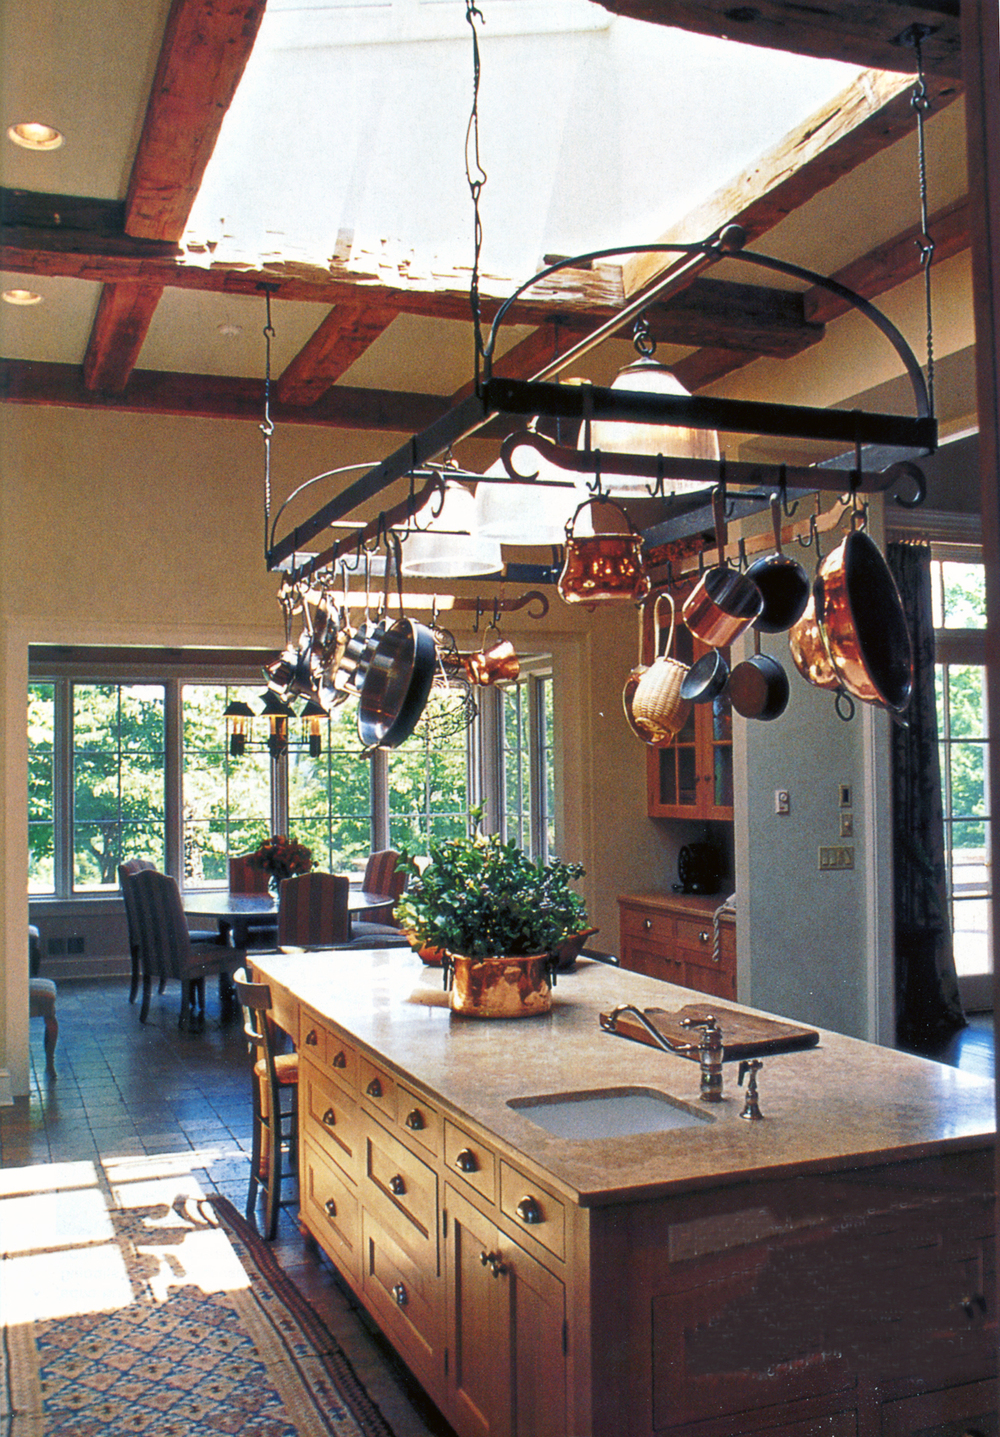 Mountainville.New_Jersey.Langone.Country_House_&_Garden.Robert_Orr_&_Associates.Architecture.Landscape_Architecture.New_Urbanism.Kitchen_to_Breakfast.Margonelli.jpg